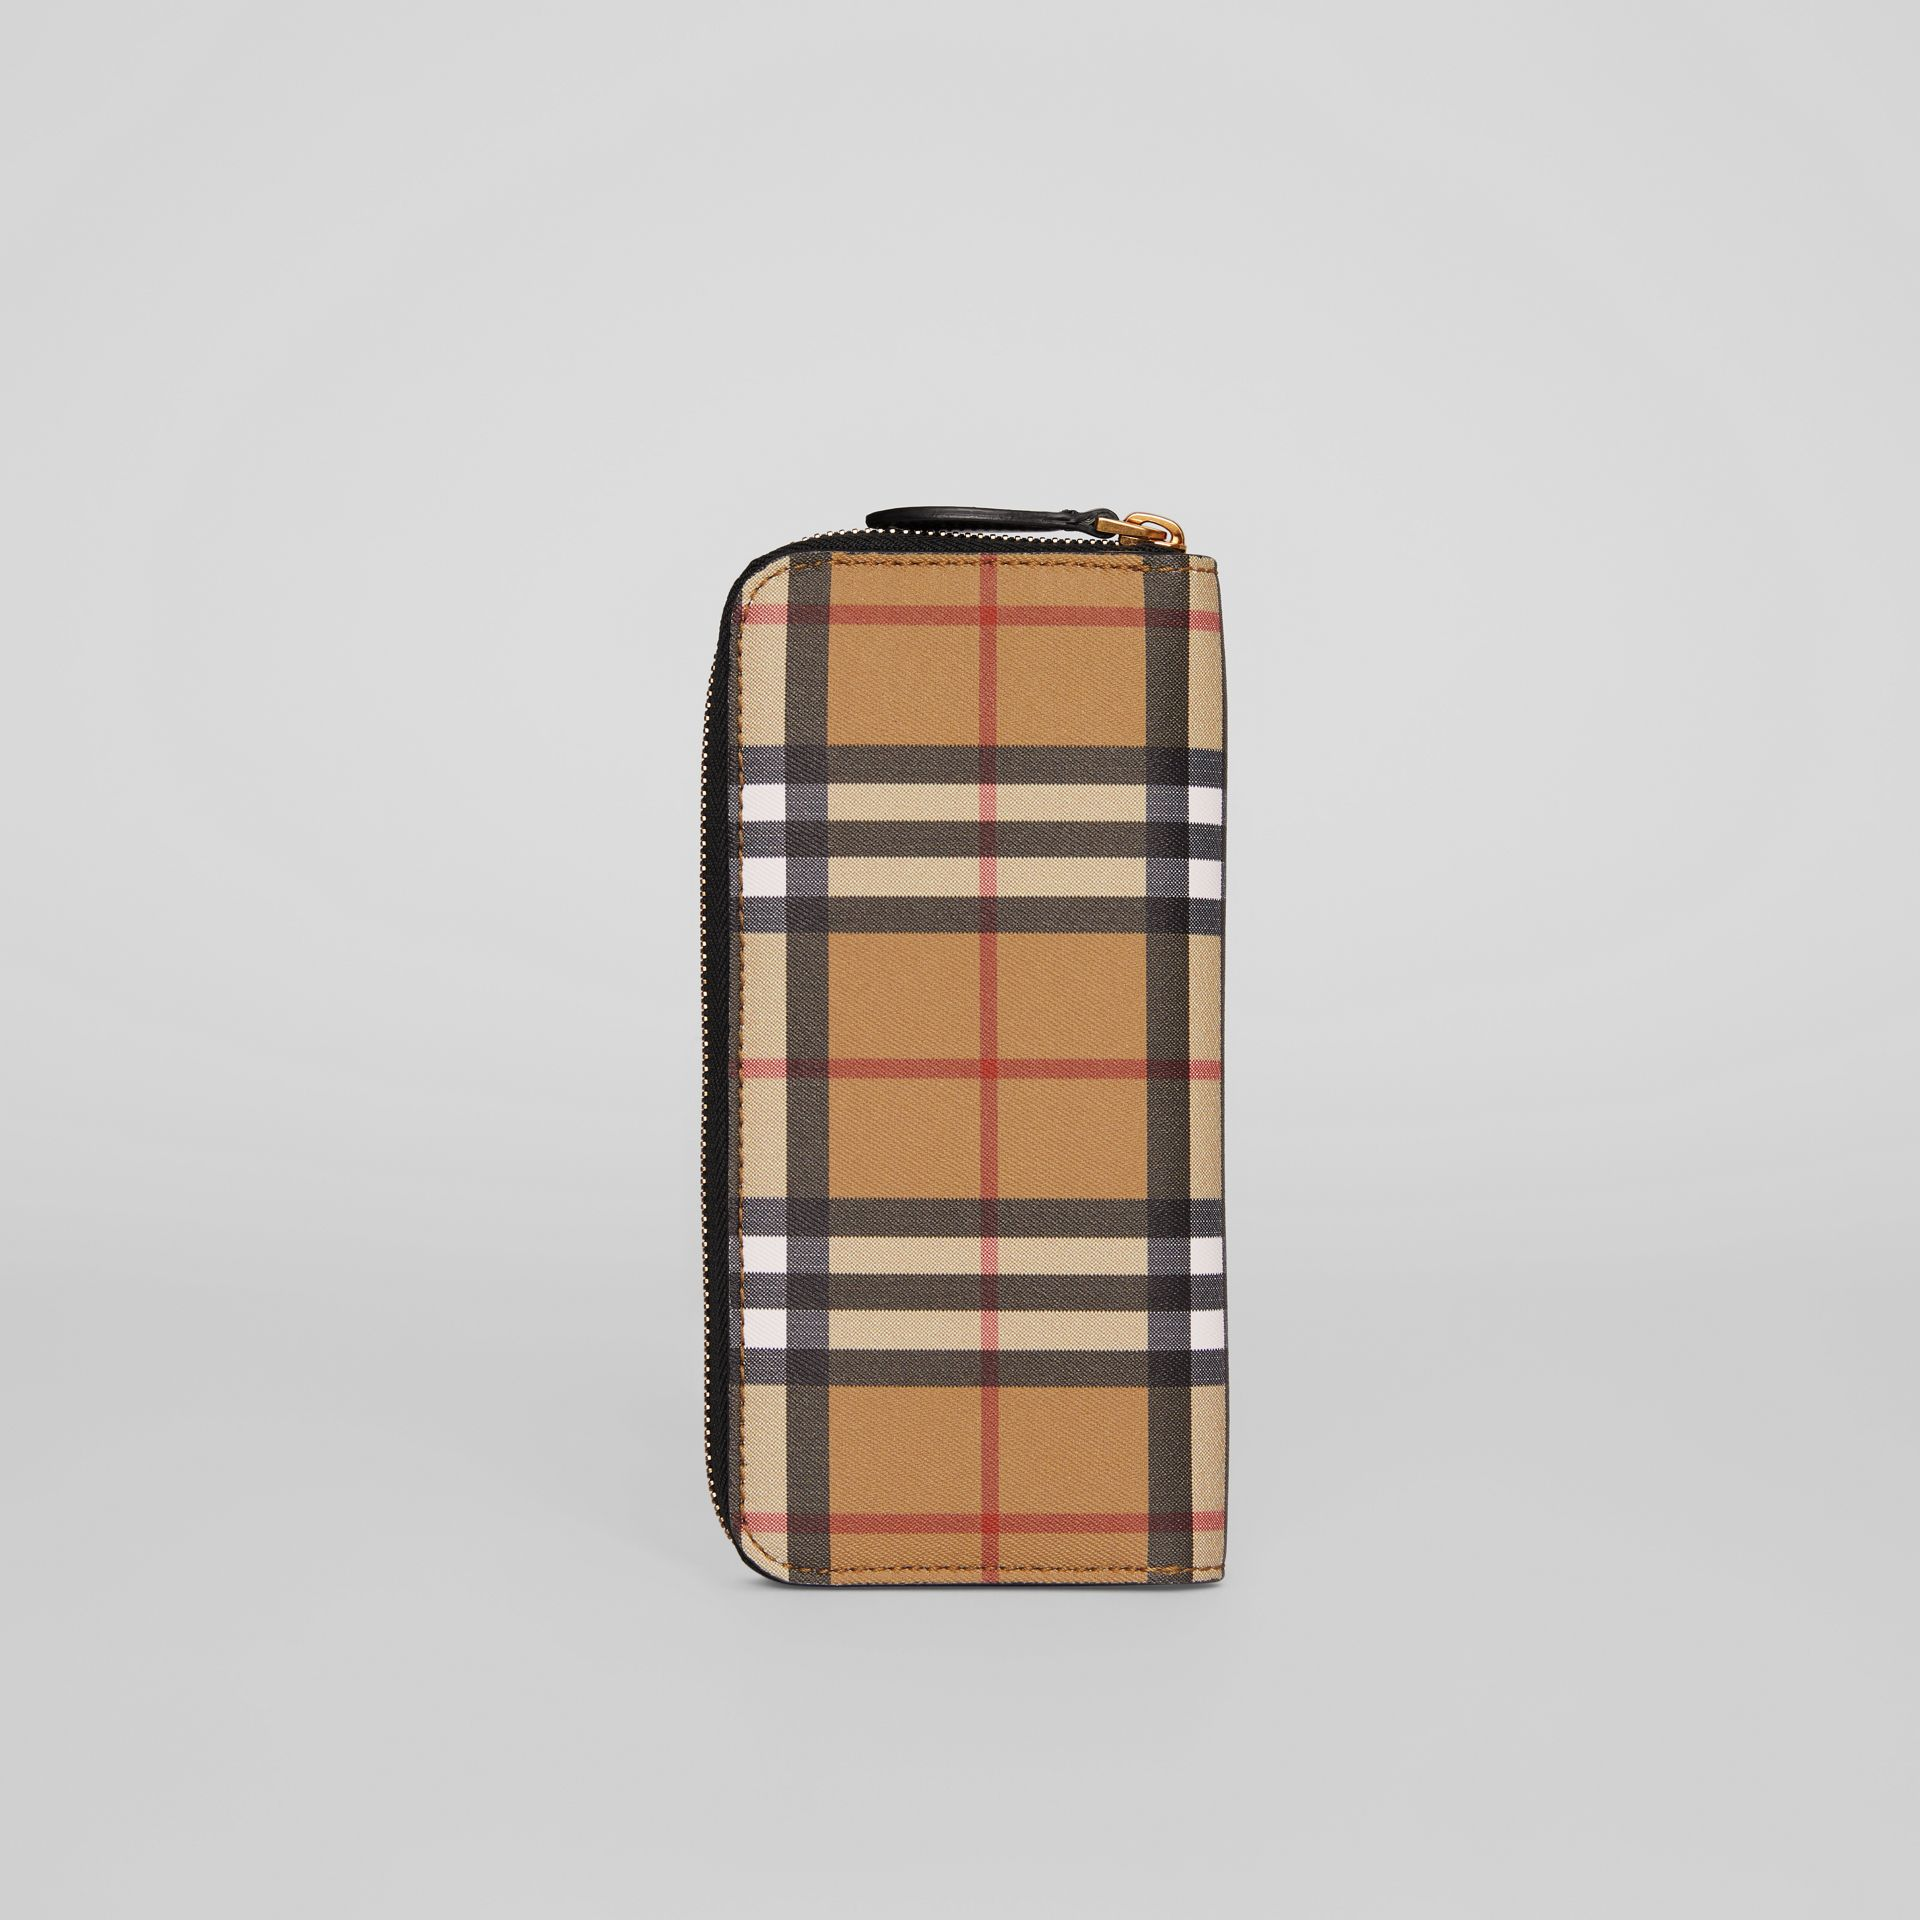 Vintage Check and Leather Ziparound Wallet in Black - Women | Burberry Hong Kong - gallery image 5